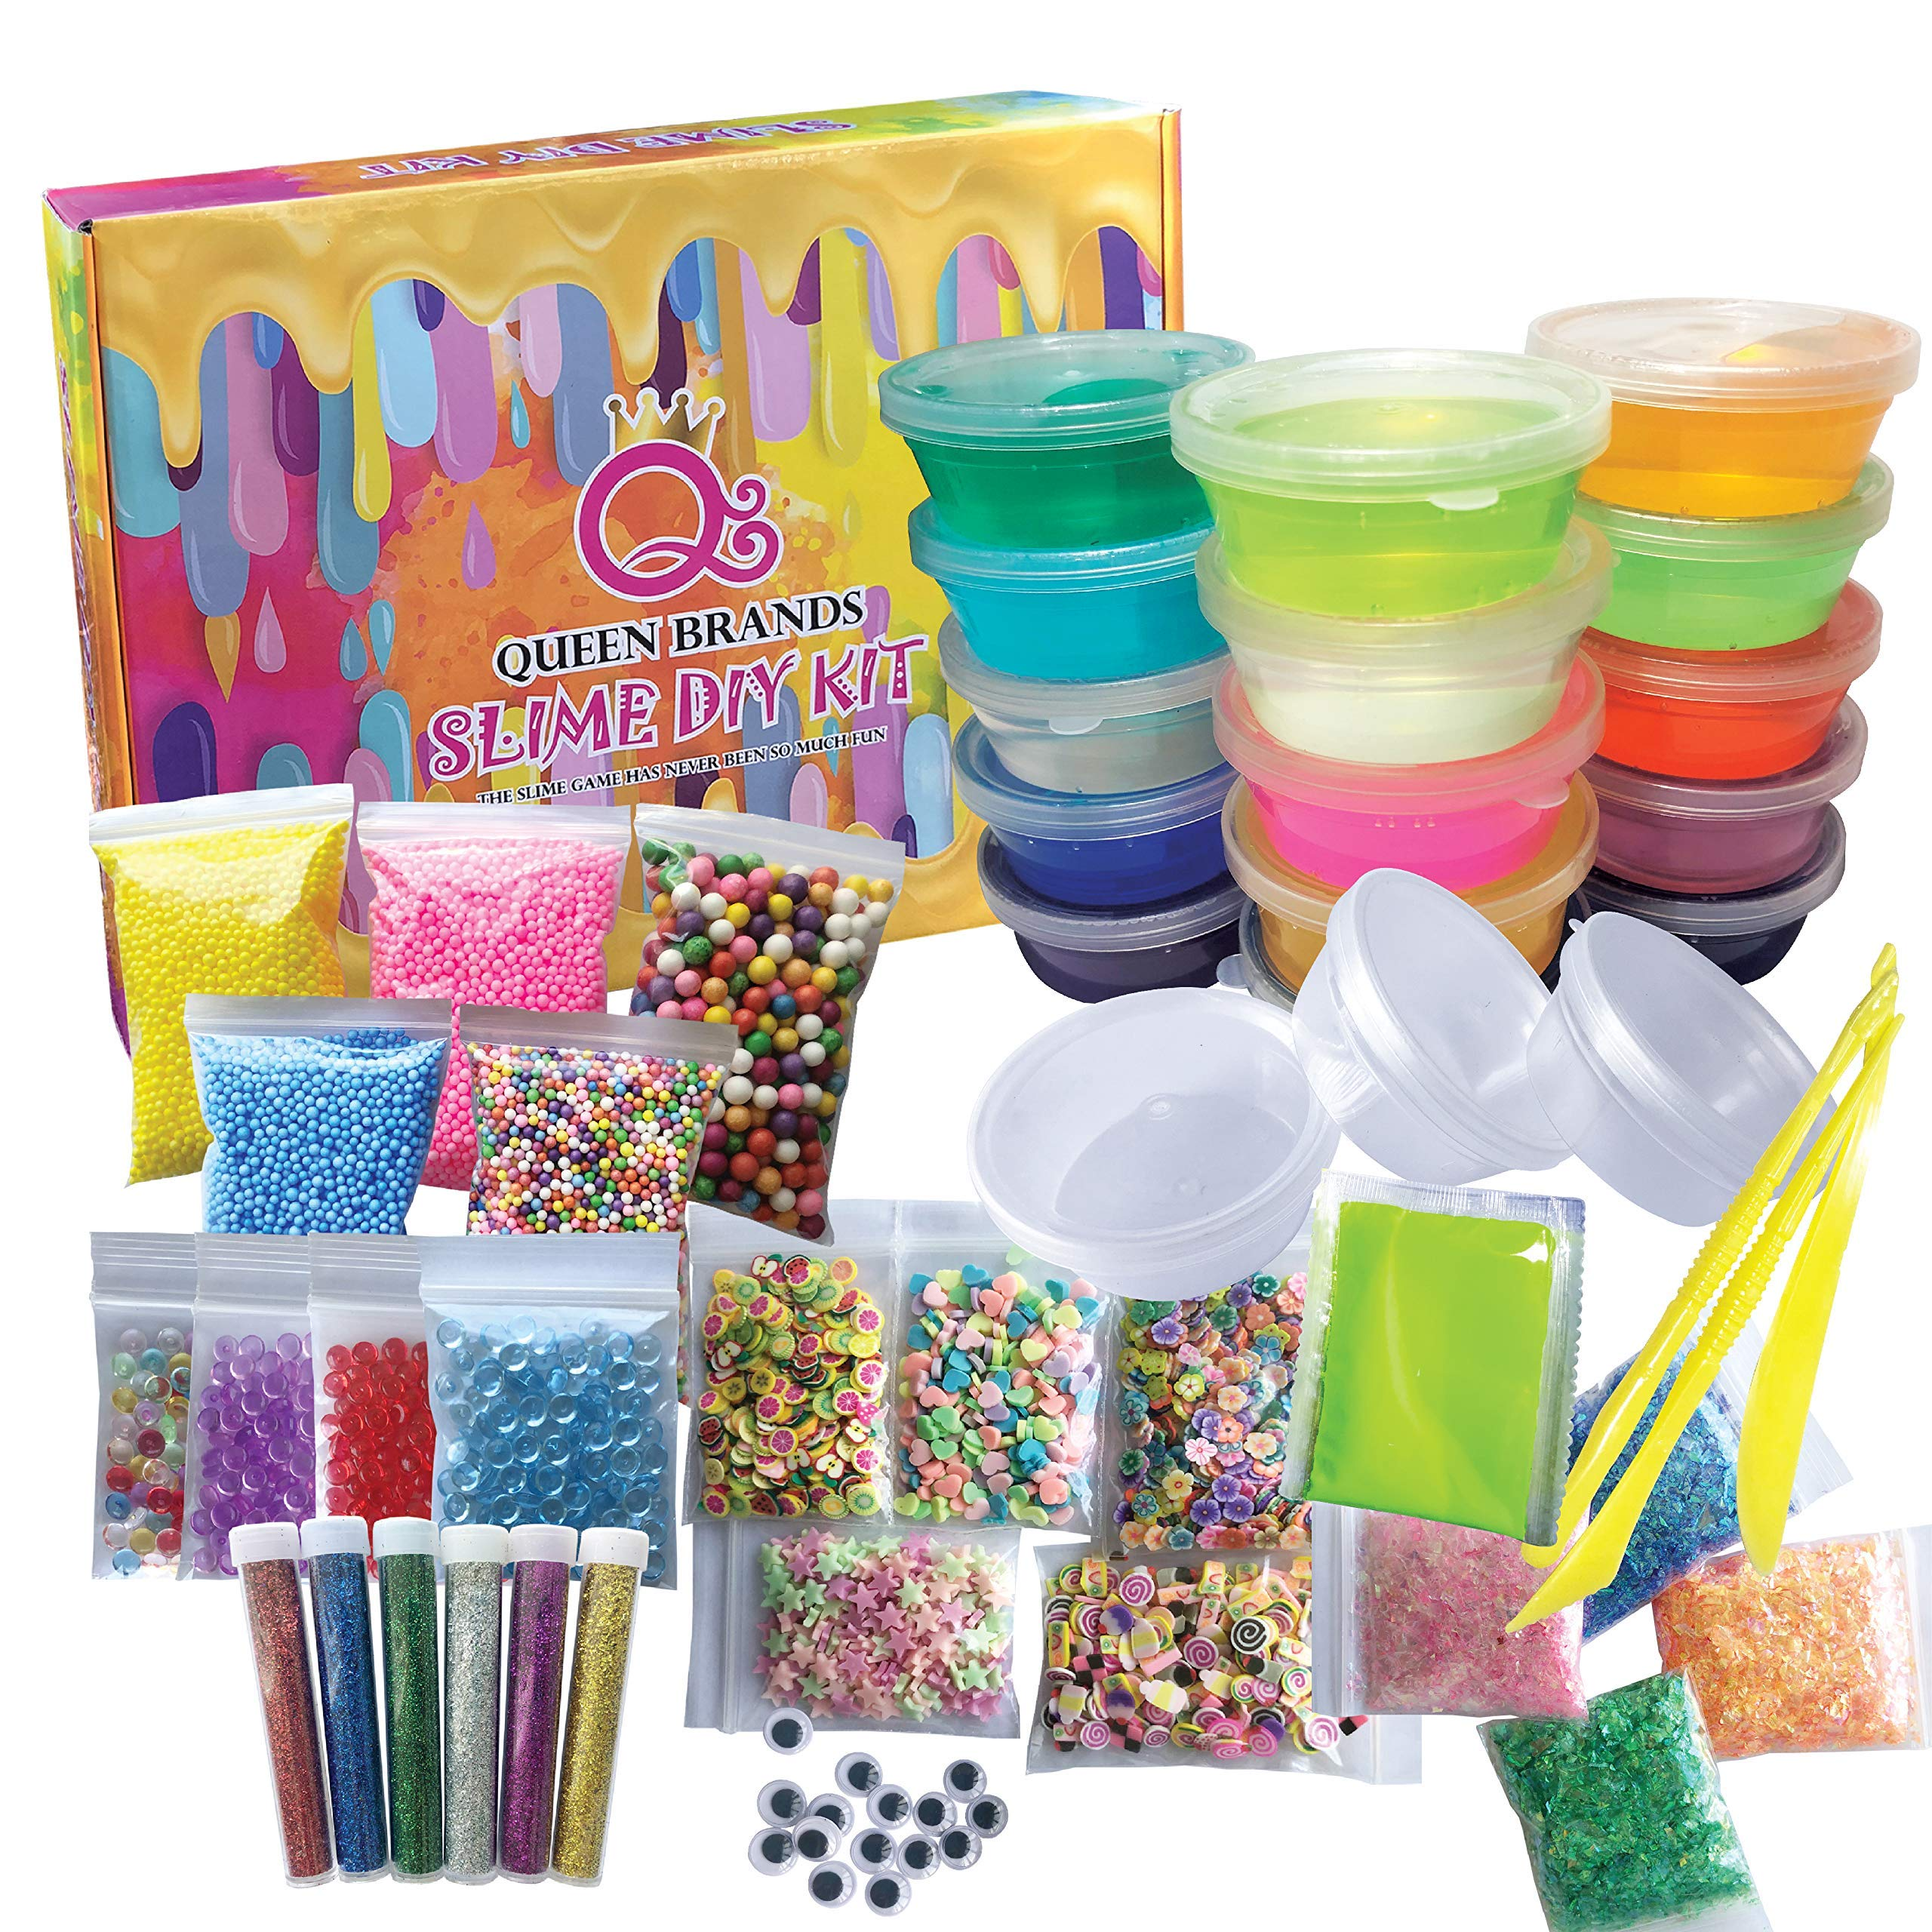 QueenBrands DIY Slime Kit Supplies for Girls & Boys| 15 Colorful Crystal Slime+3 Empty Containers | Add Glitter,Make it Glow in The Dark | Fluffy | Water Based StressToys